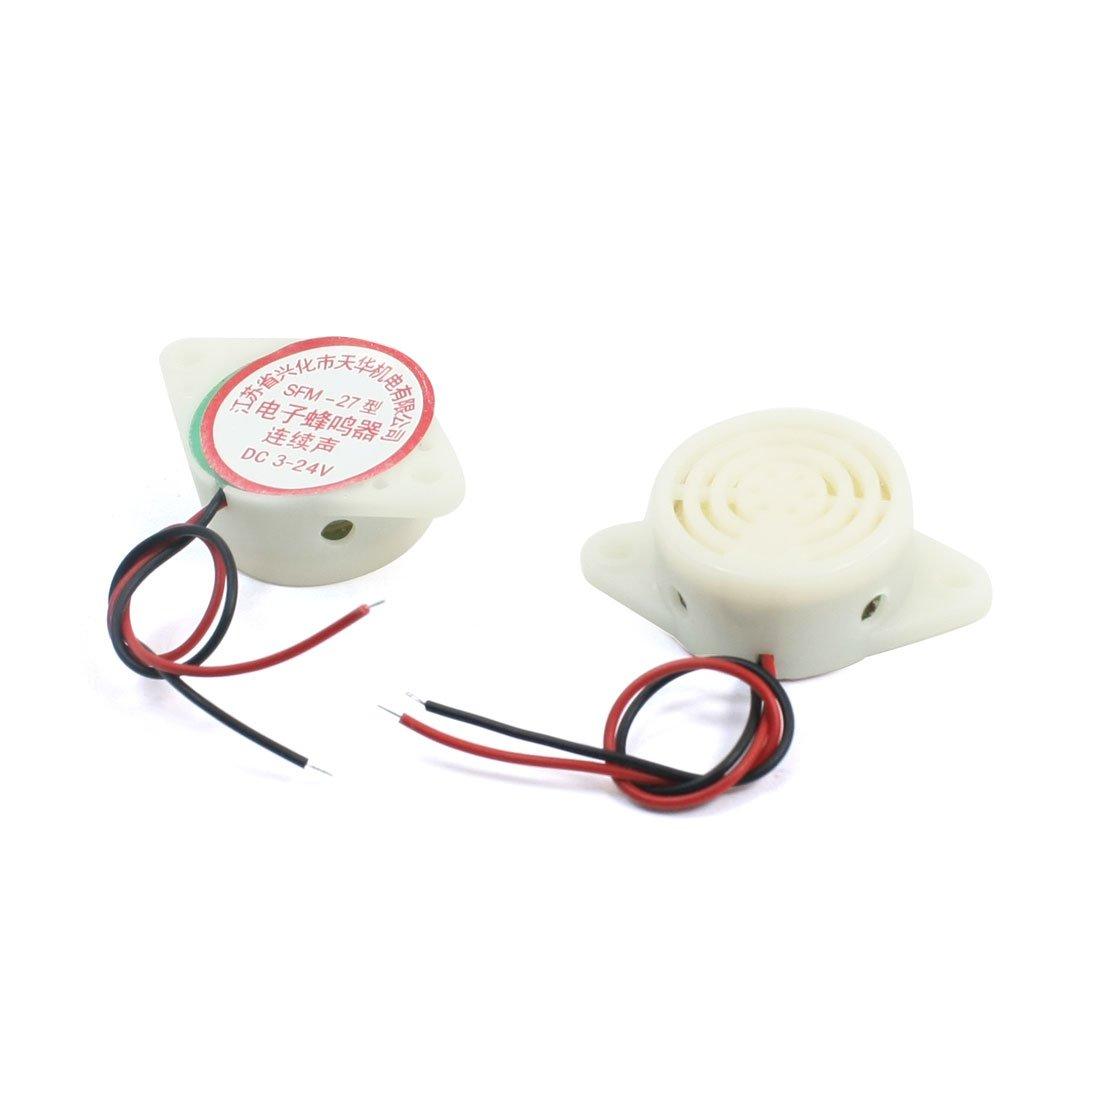 Aexit 2Pcs DC Relays 3-24V SFM-27 Continous Beep Piezo Active Warning Buzzer /& Chime Electronic Buzzer